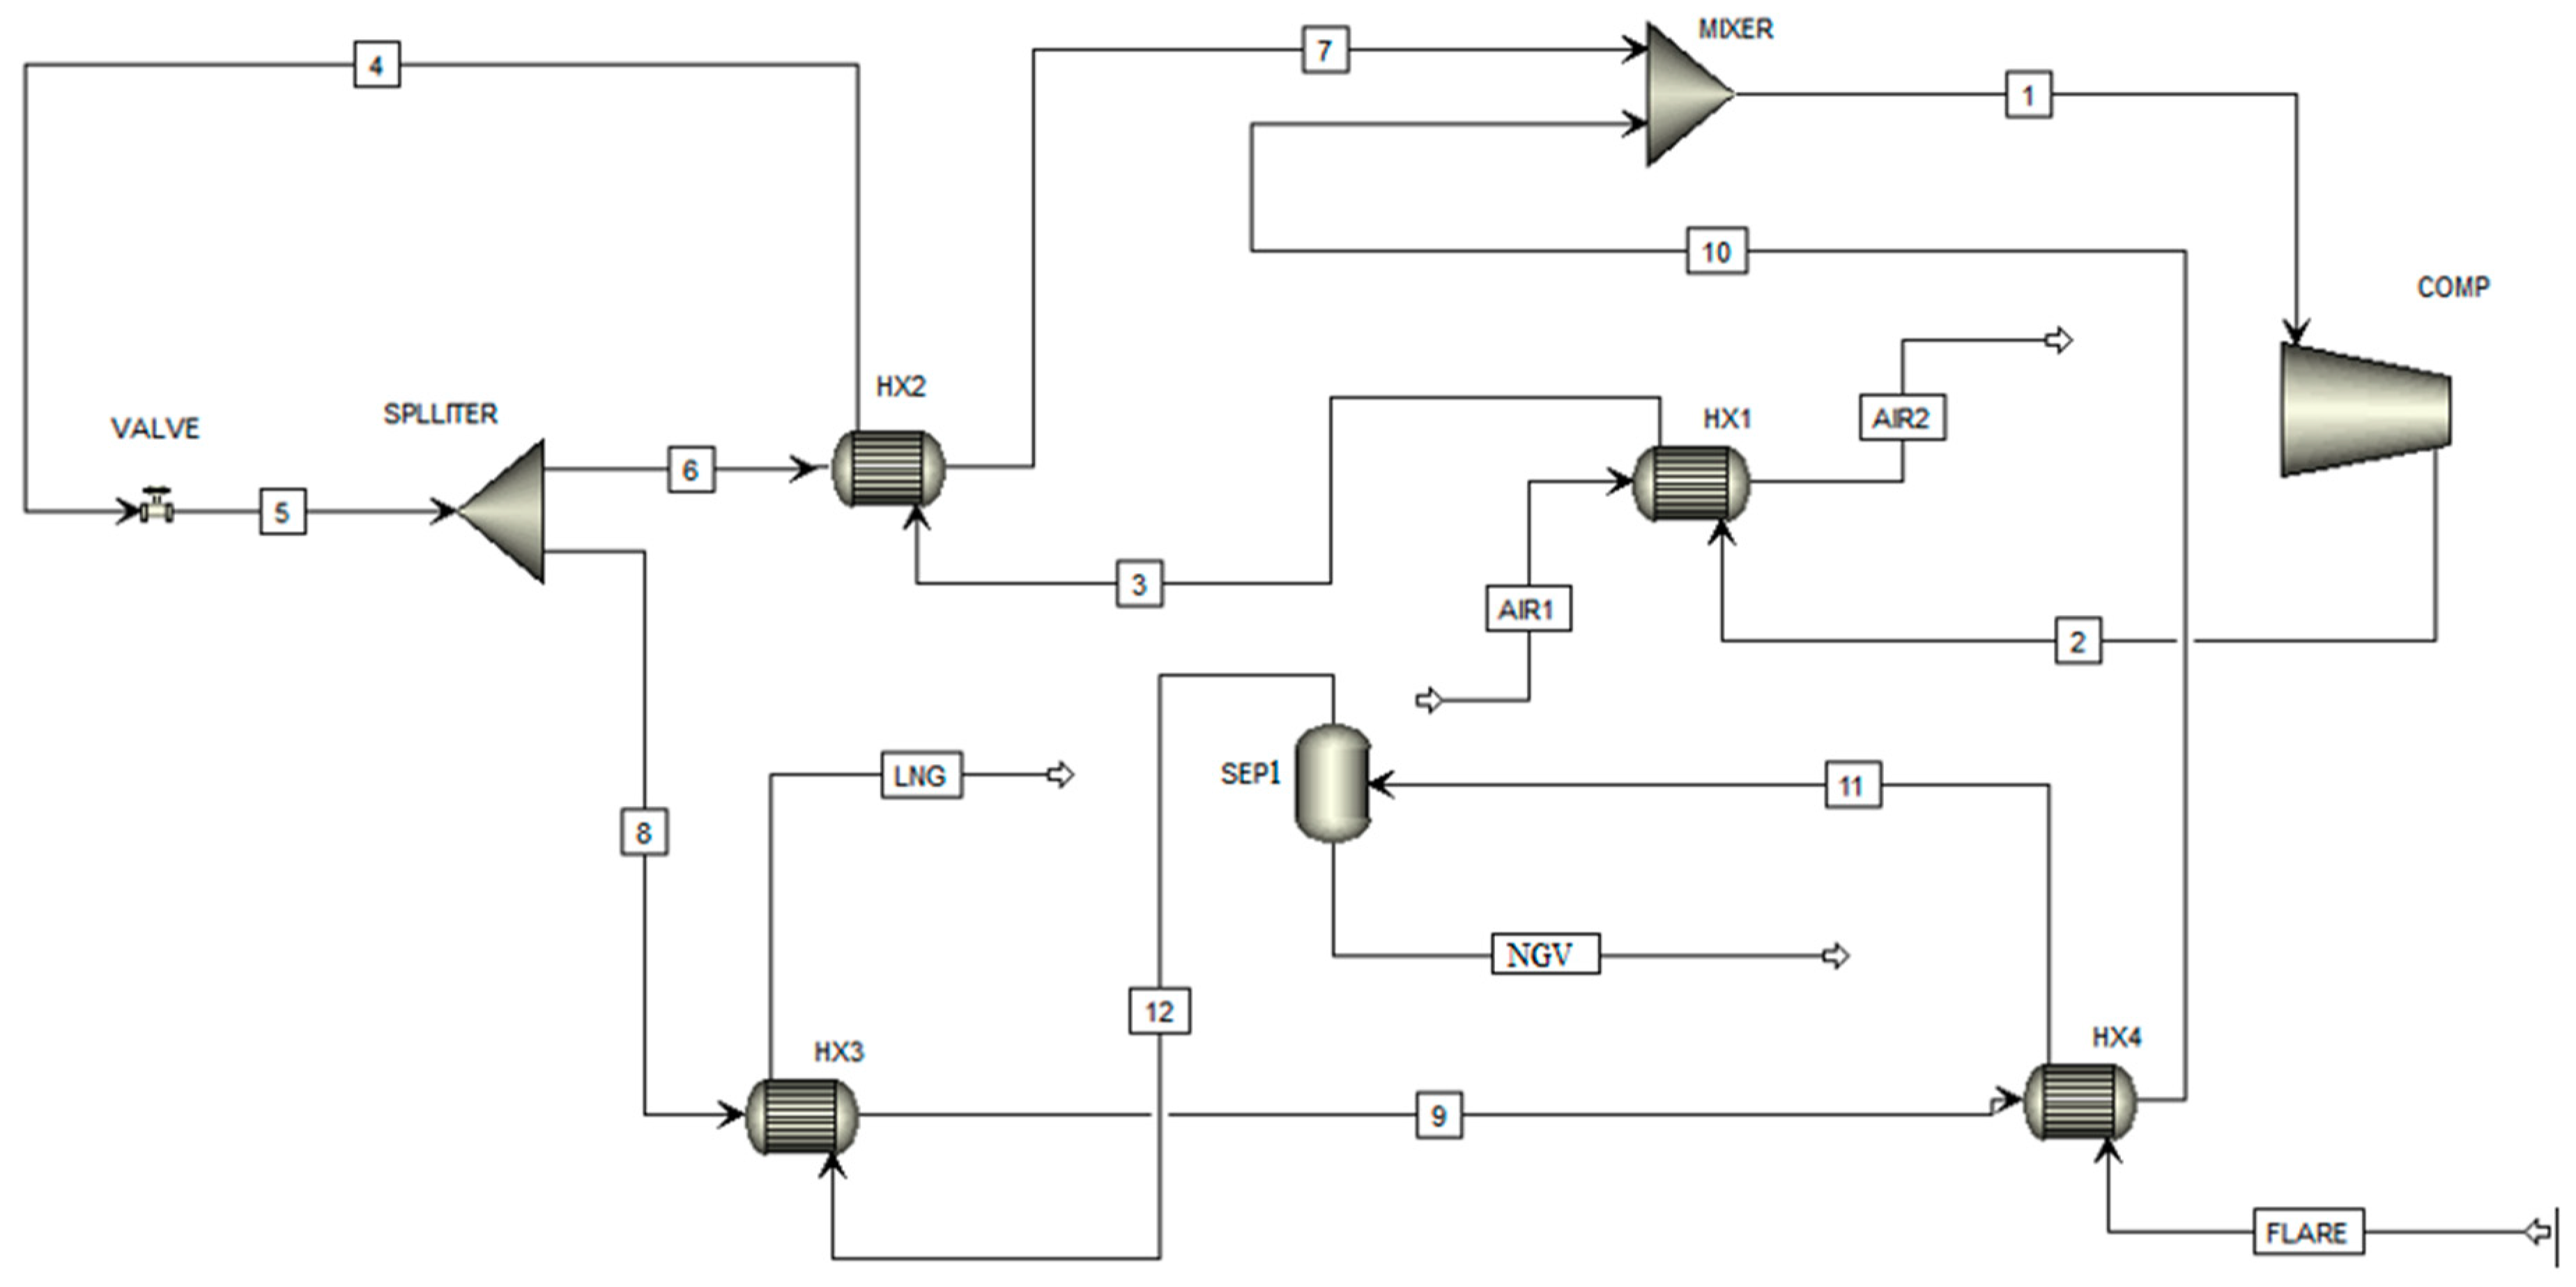 Energies Free Full Text Thermoeconomical Evaluation Of Process Flow Diagram Gtl Plant 11 01868 G003